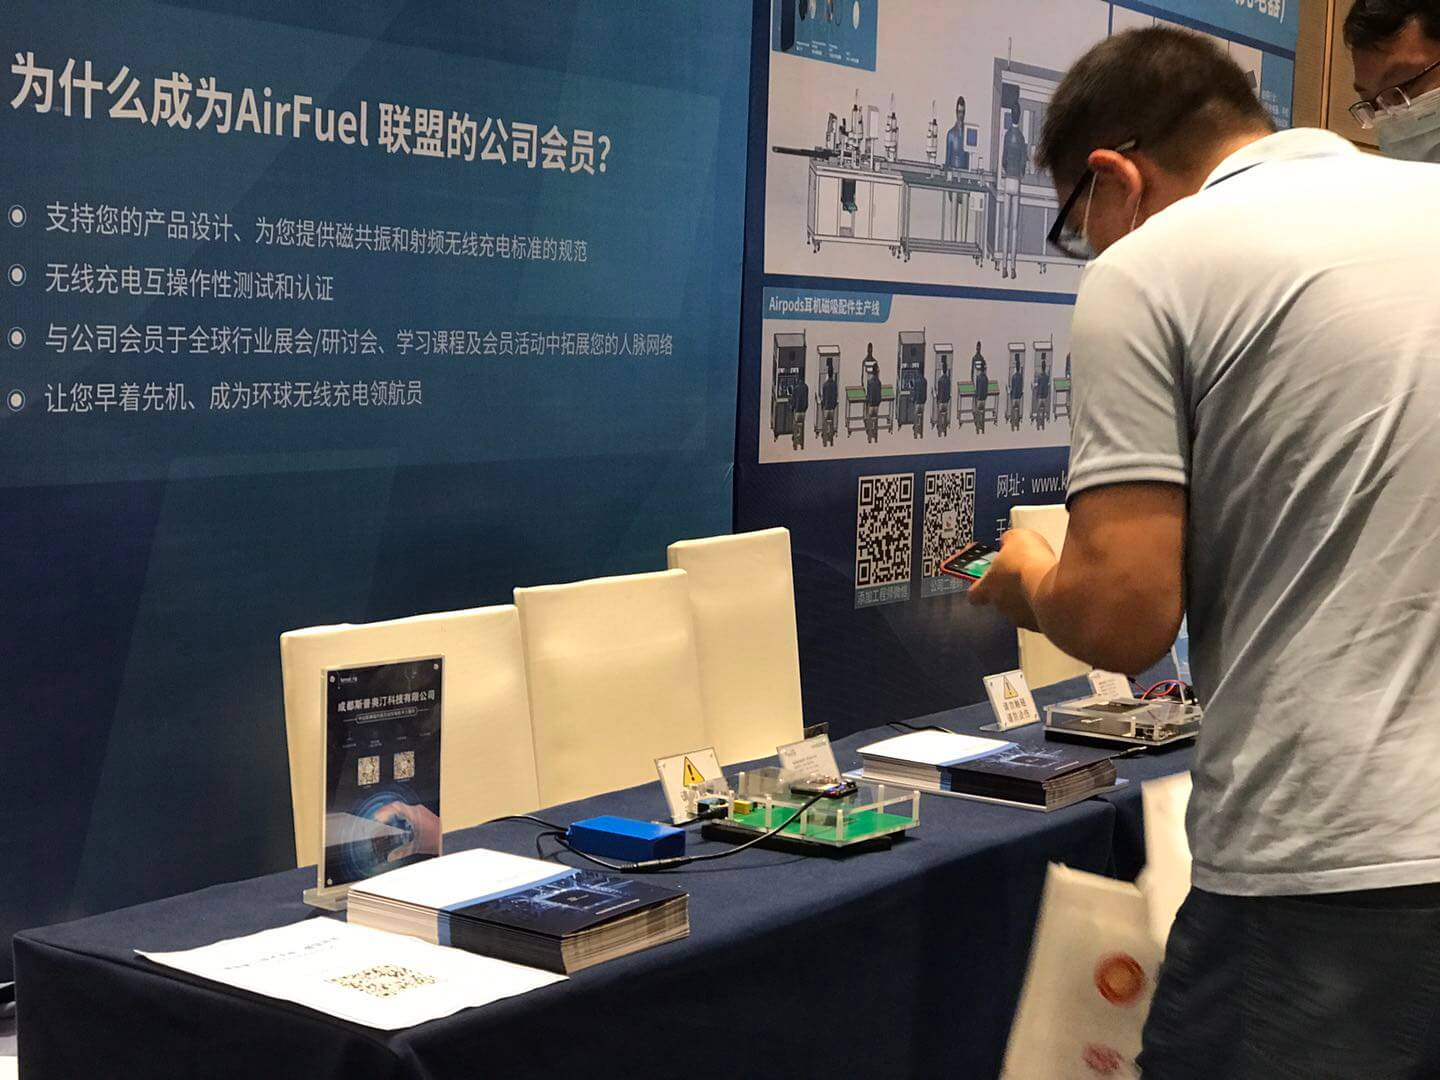 AirFuel Chongdiantou 2020 Booth Demo